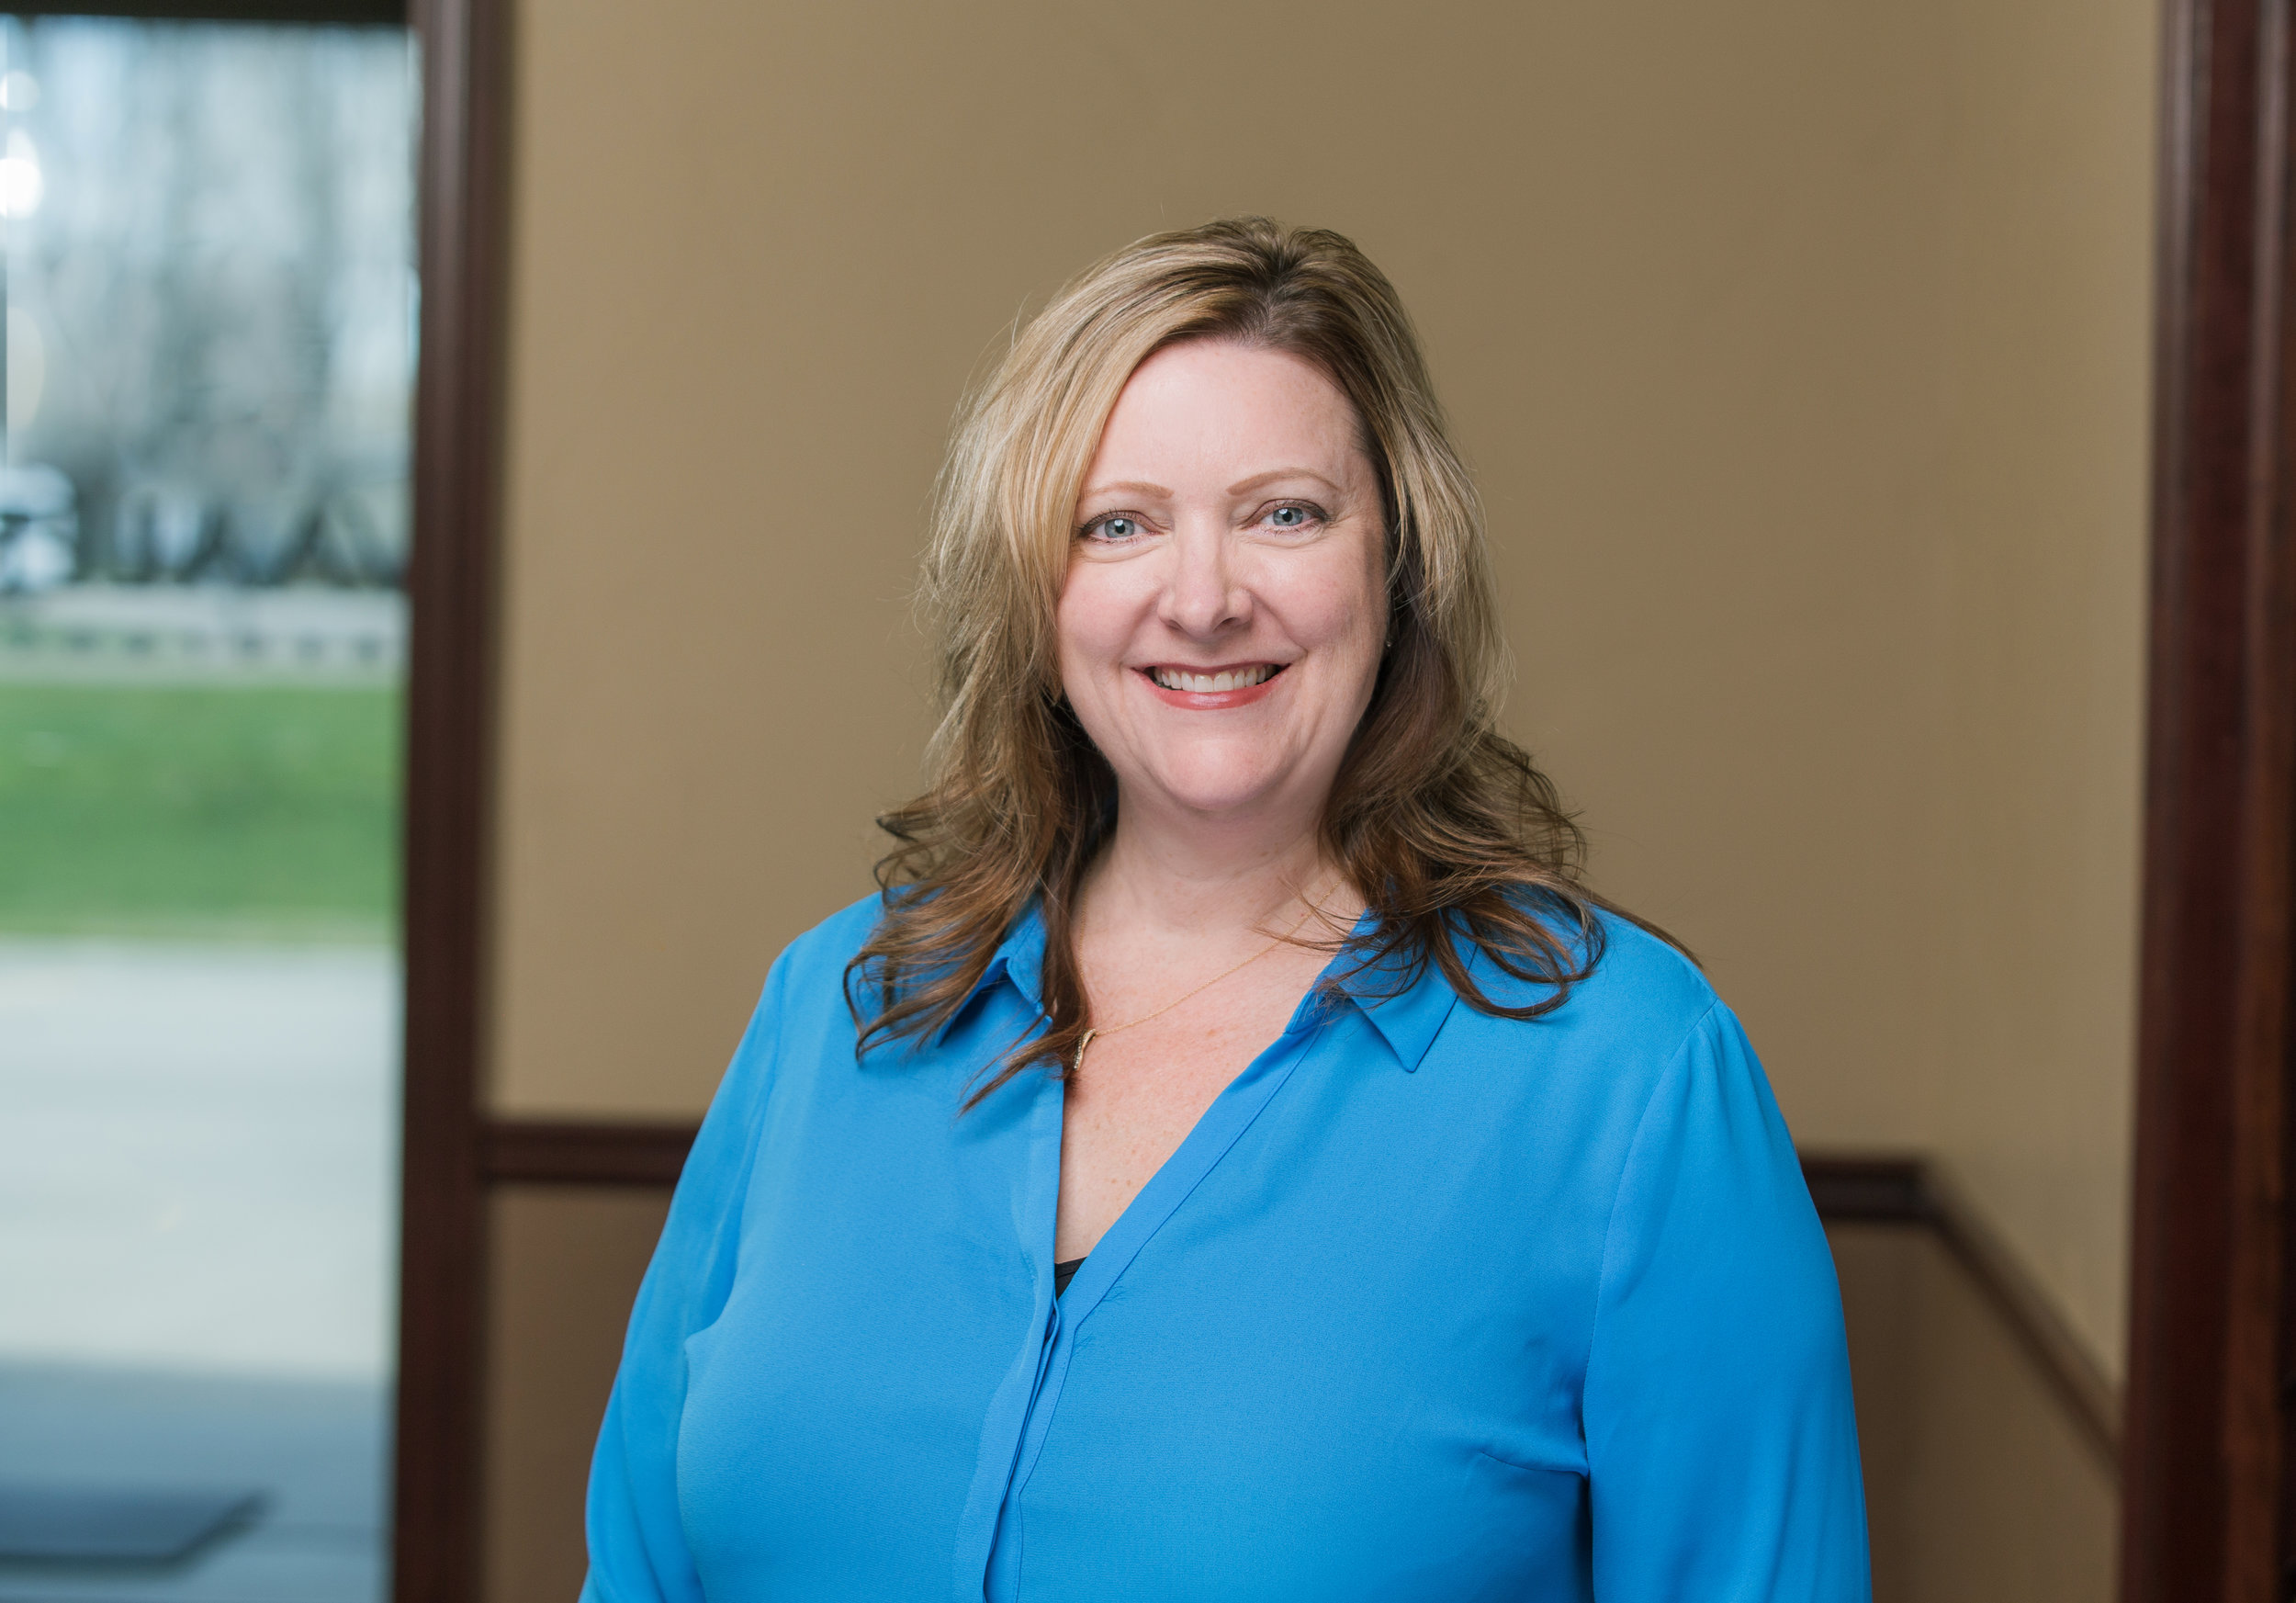 Rhonda Watkins, AU - Account ExecutiveRhonda received her B.A. from the University of Minnesota and majored in Political Science. She started working for Vaaler in March of 2019. She has over 20 years of insurance under her belt.She currently lives in Bismarck with her husband and two daughters. She enjoys reading, traveling, being a hockey and soccer mom, and being with her family.